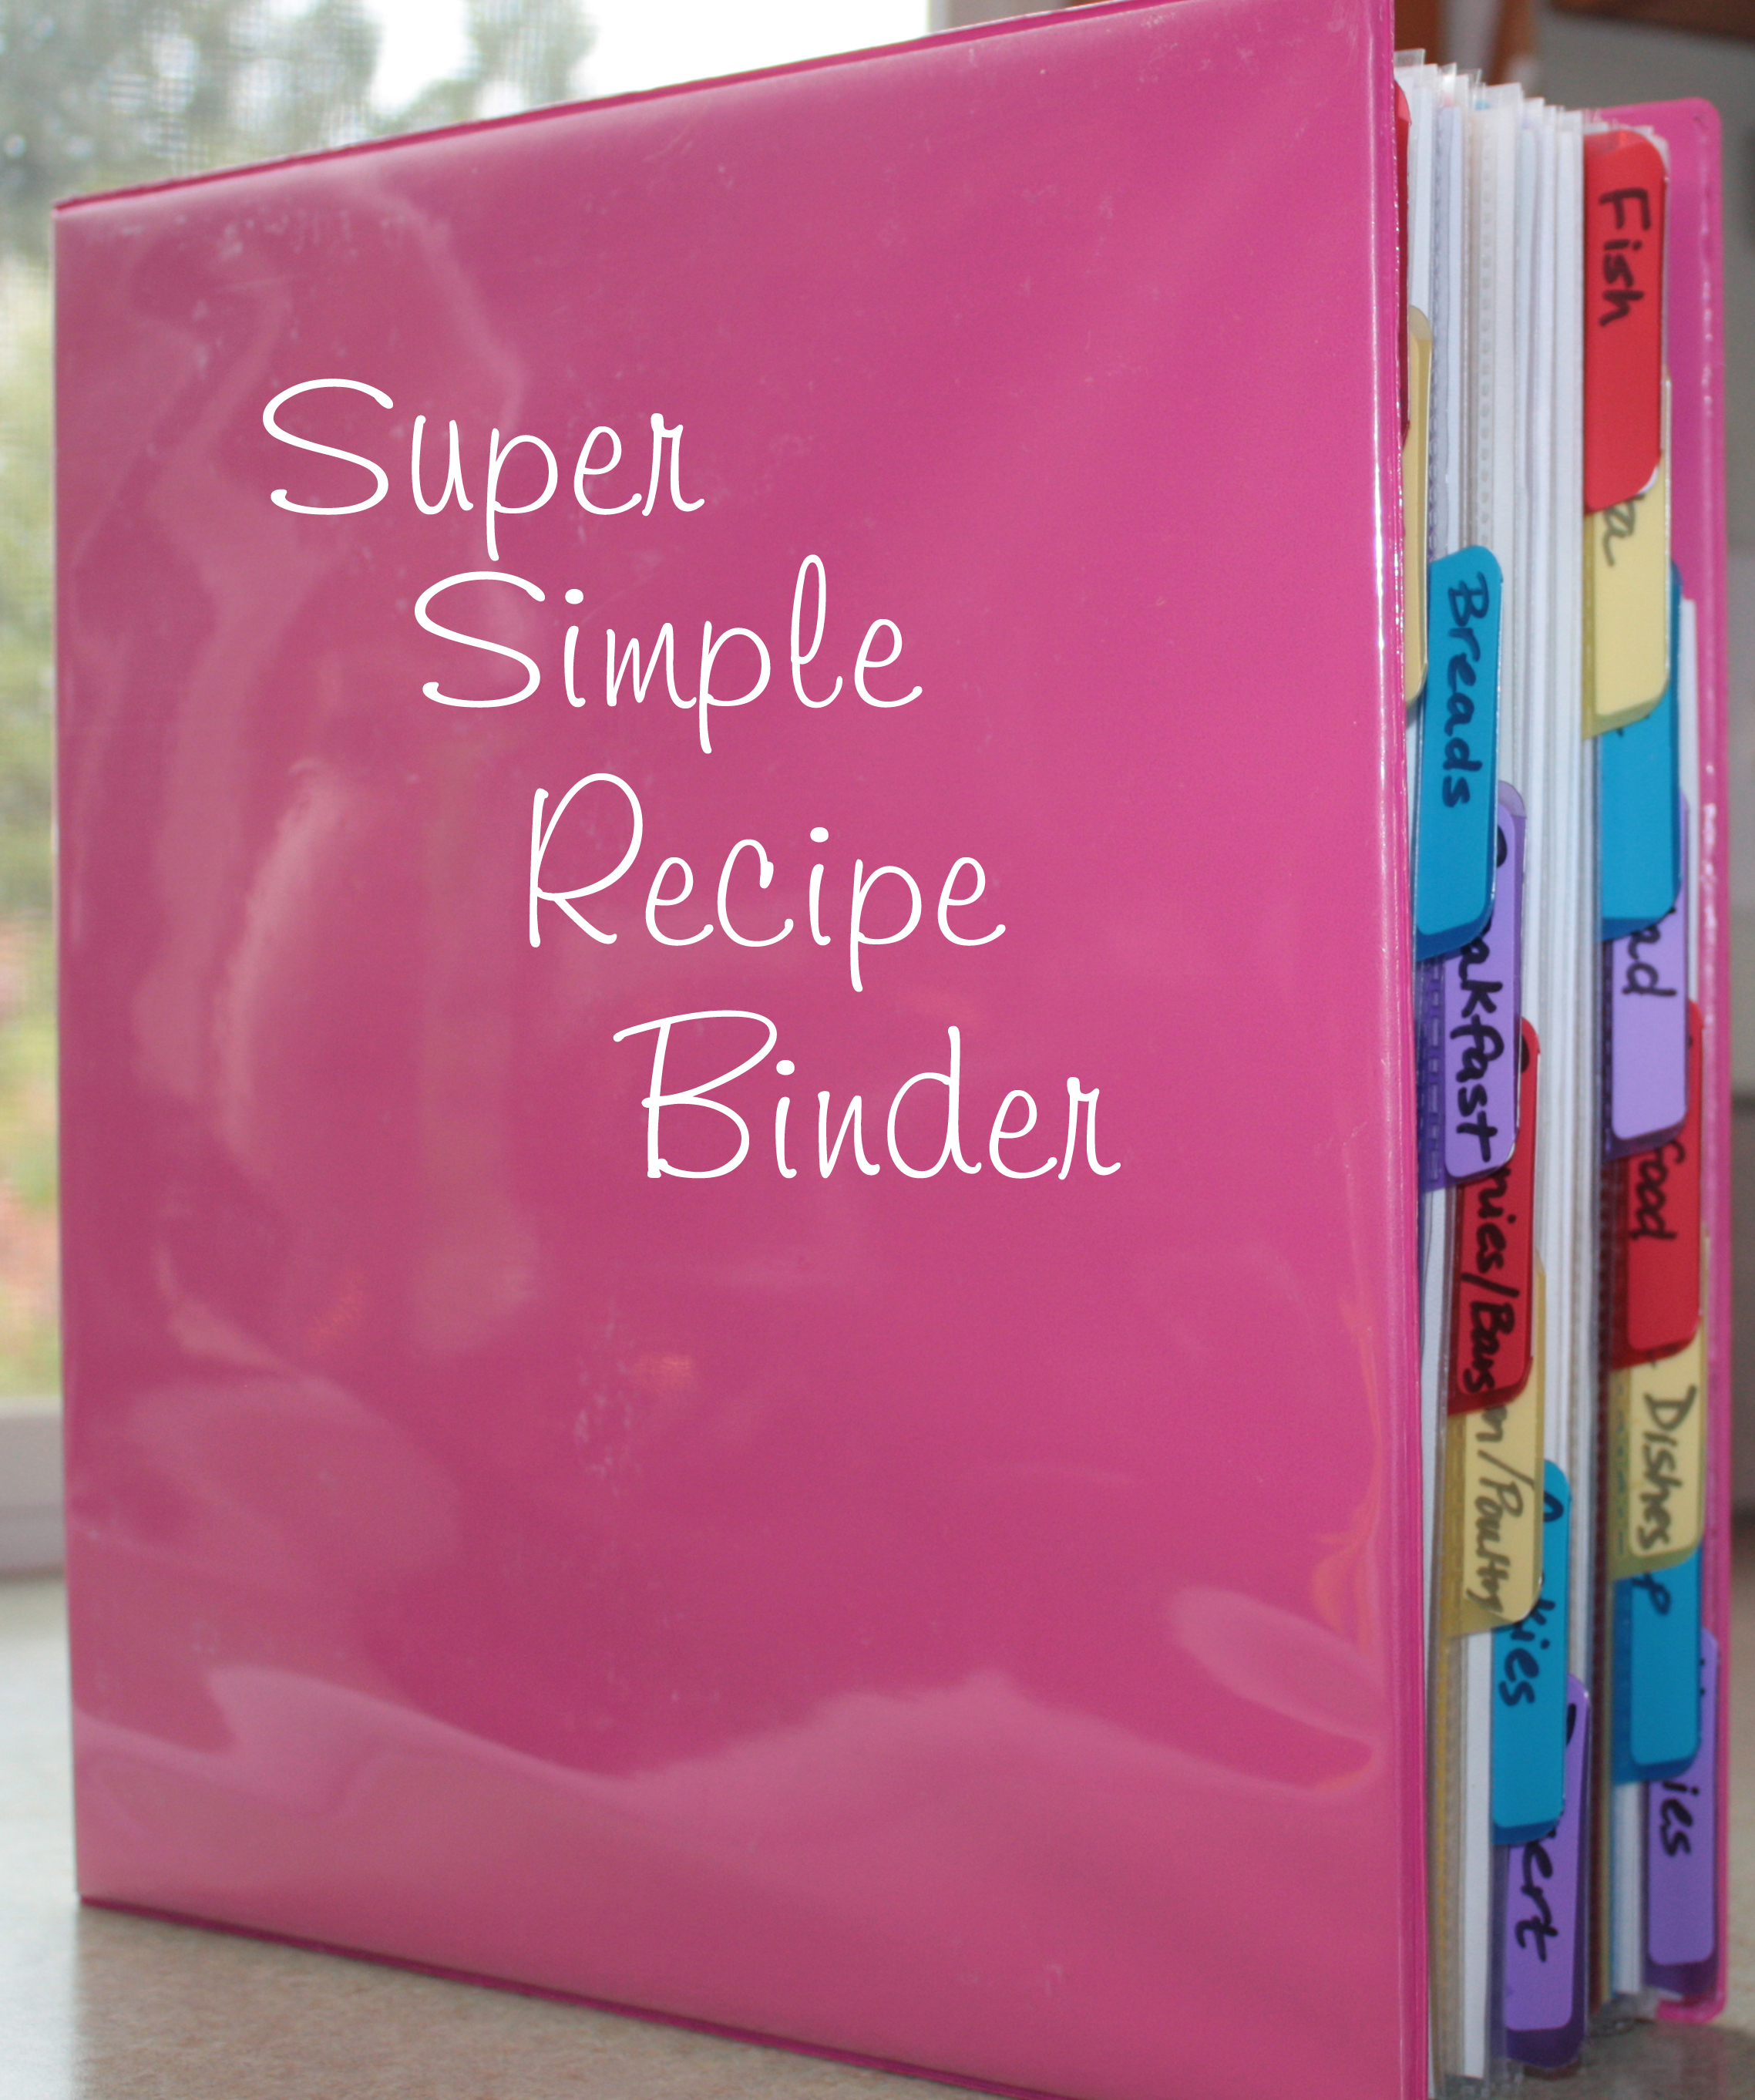 Tried and tested recipe binder